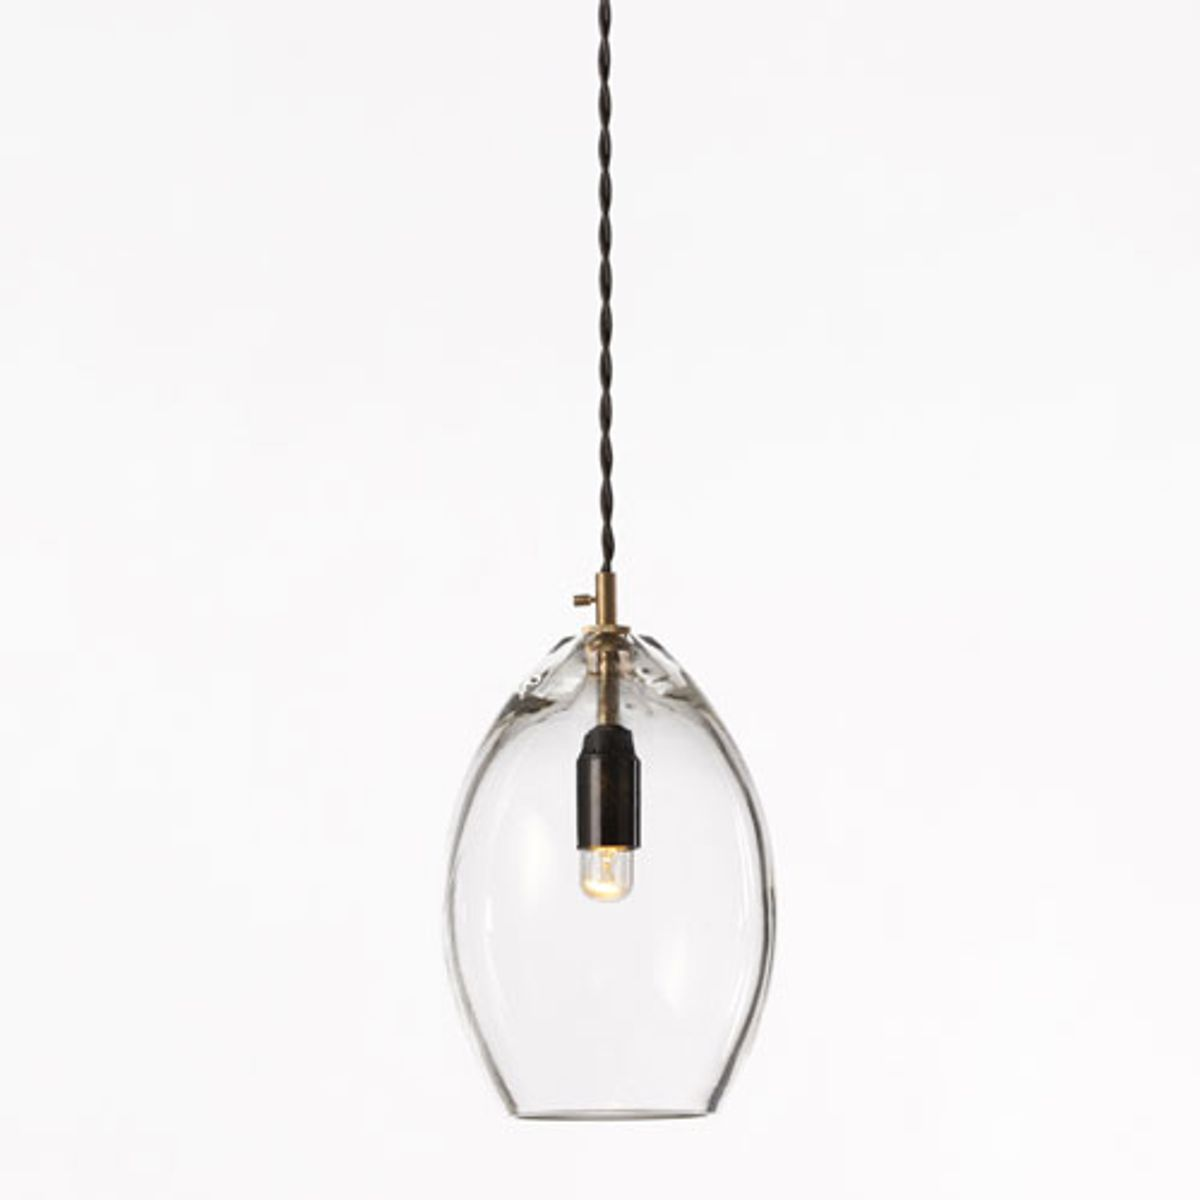 Suspension en verre et laiton Unika Northern Lighting  - GM